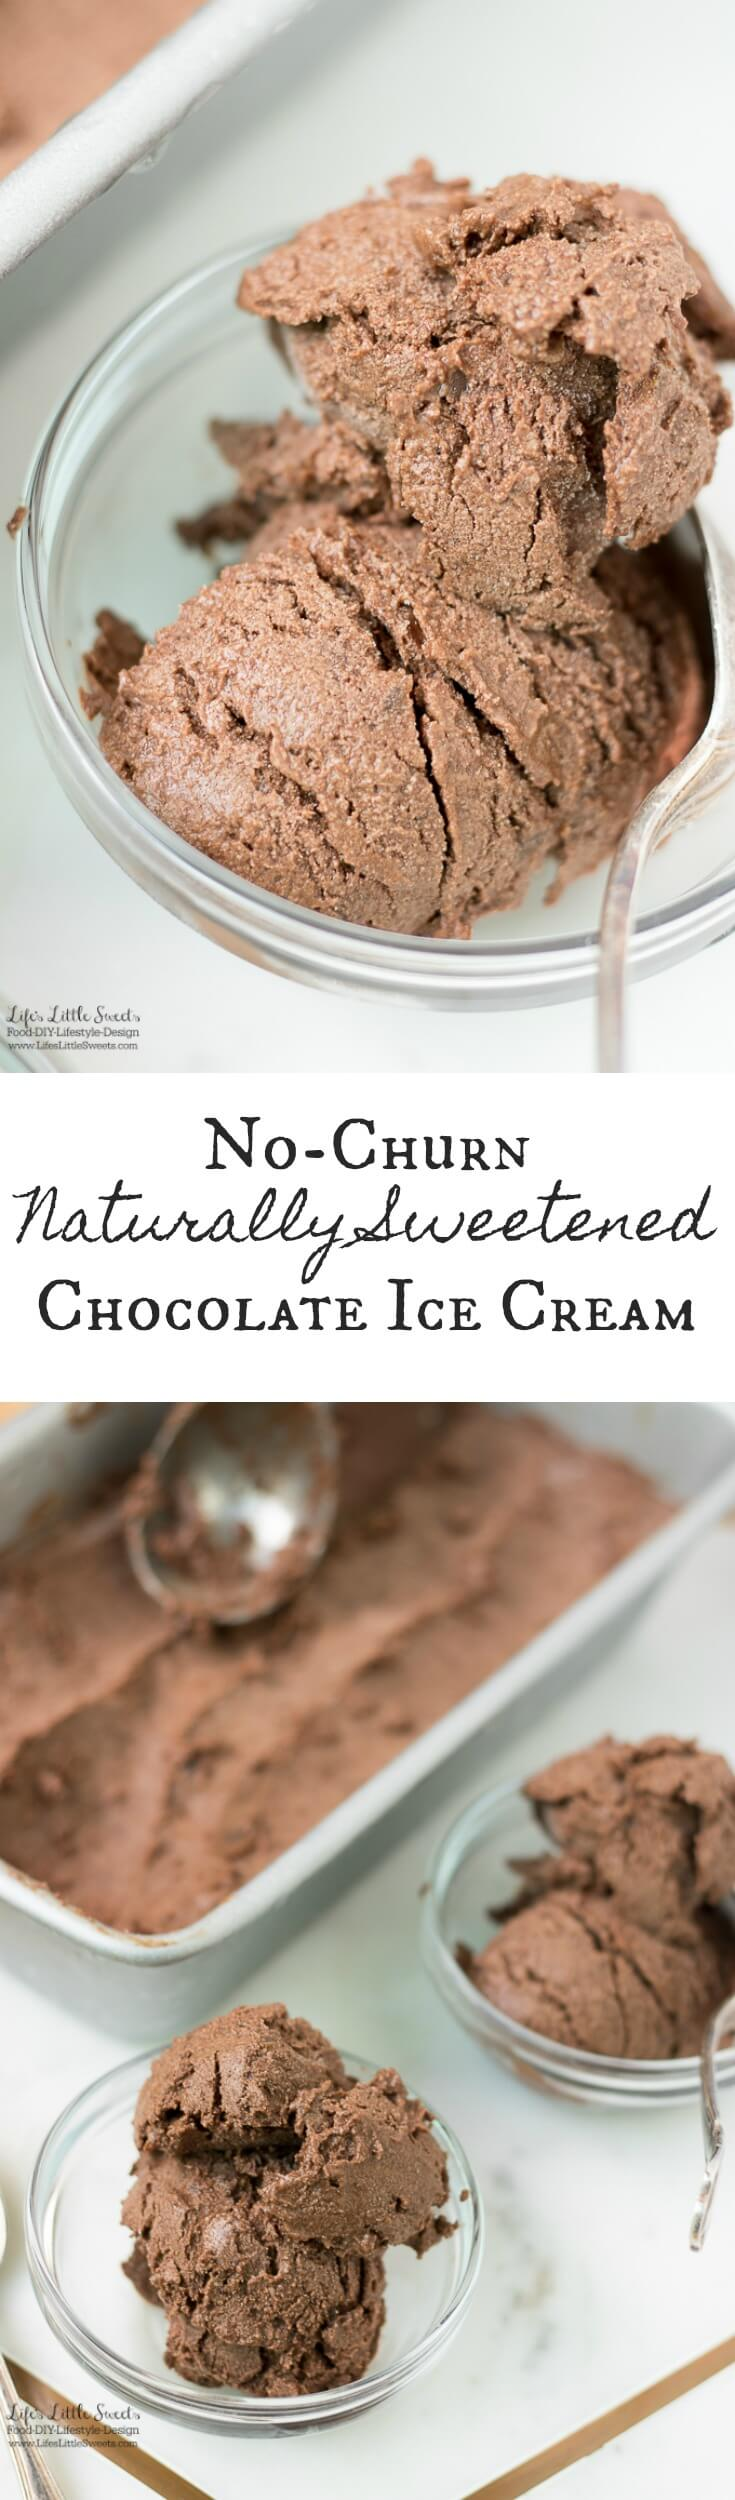 This No-Churn Naturally Sweetened Chocolate Ice Cream is a healthier, chocolate ice cream option that is so tasty and delicious. (no refined sugar, non-dairy, vegan option)